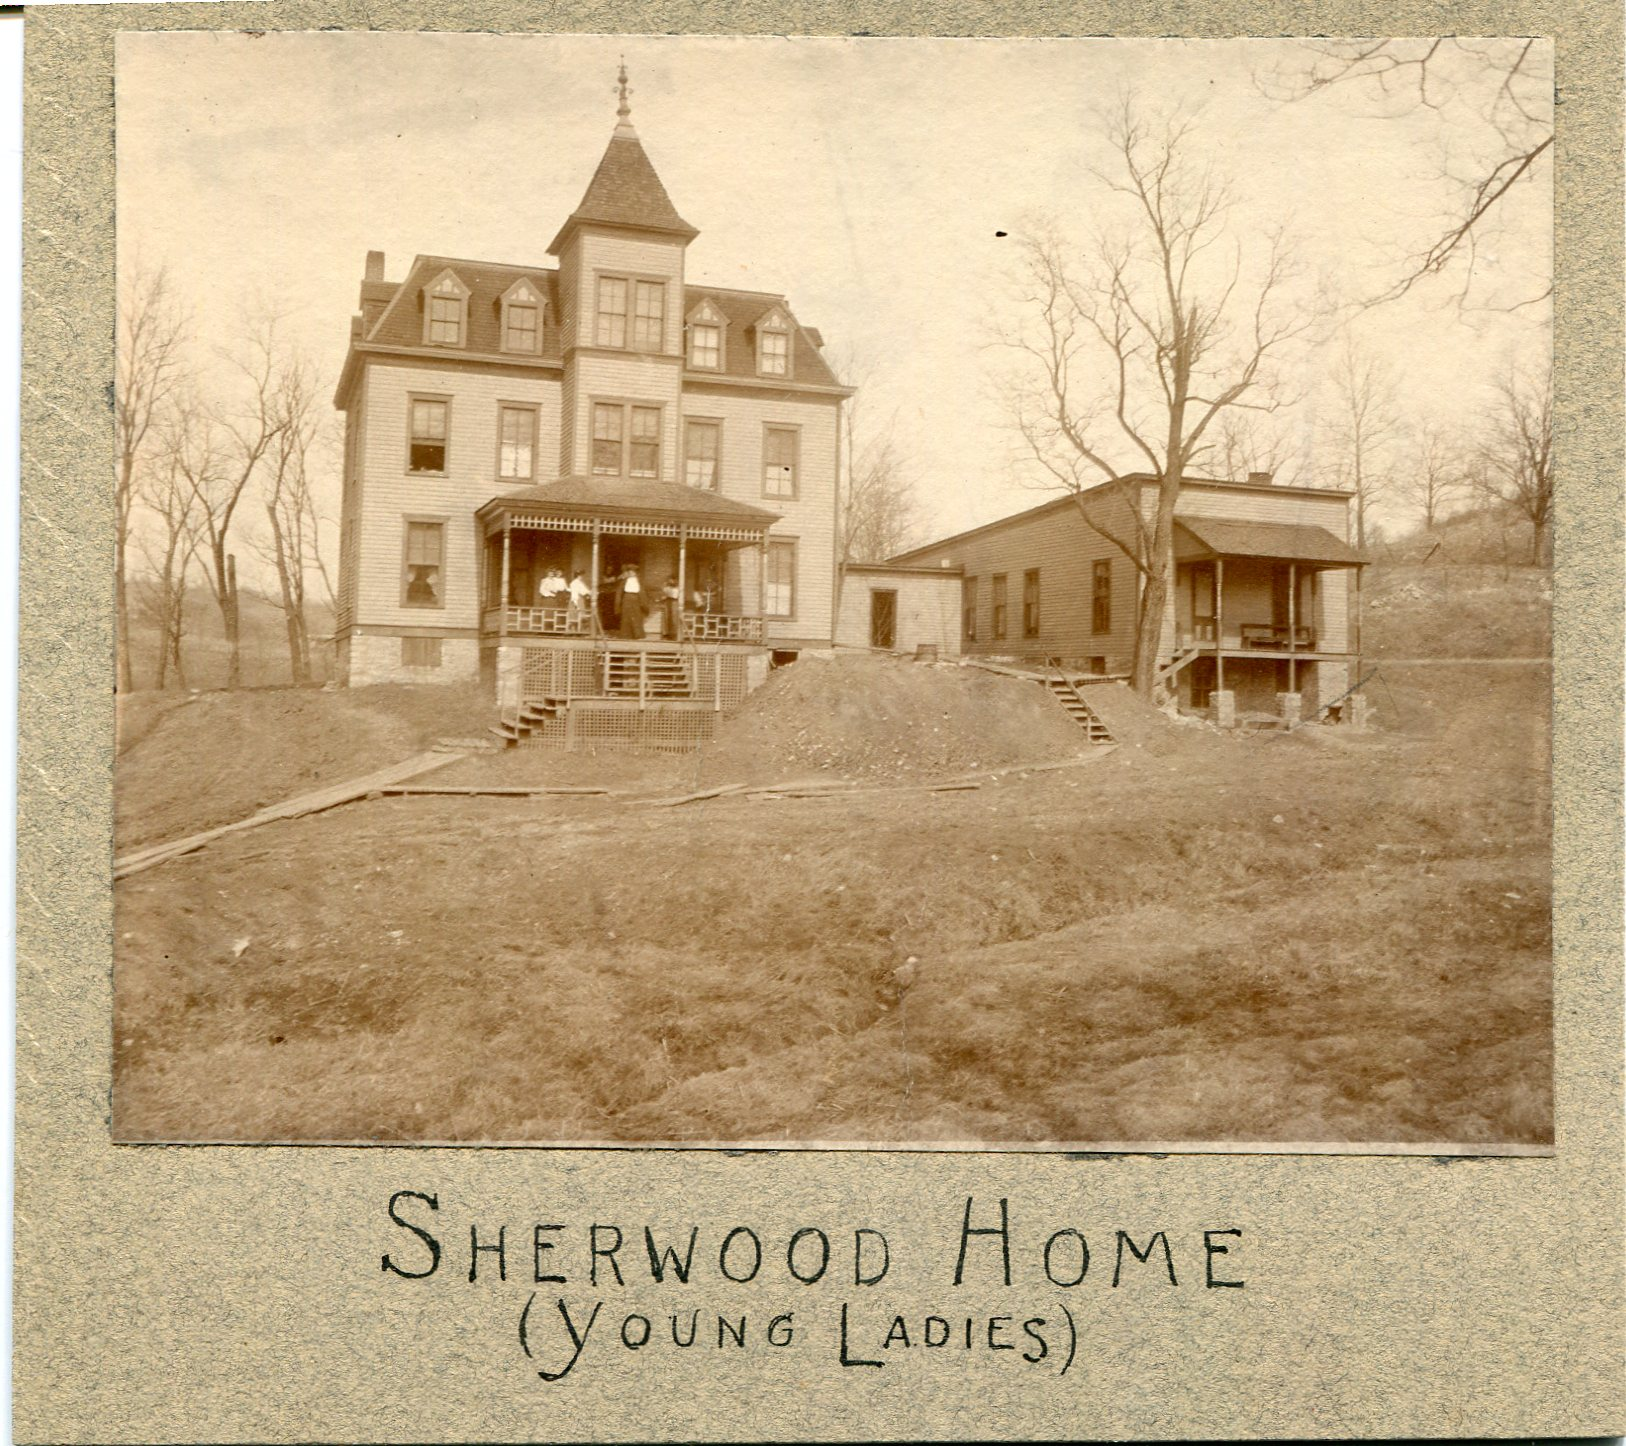 A photo taken of the front of Sherwood House.